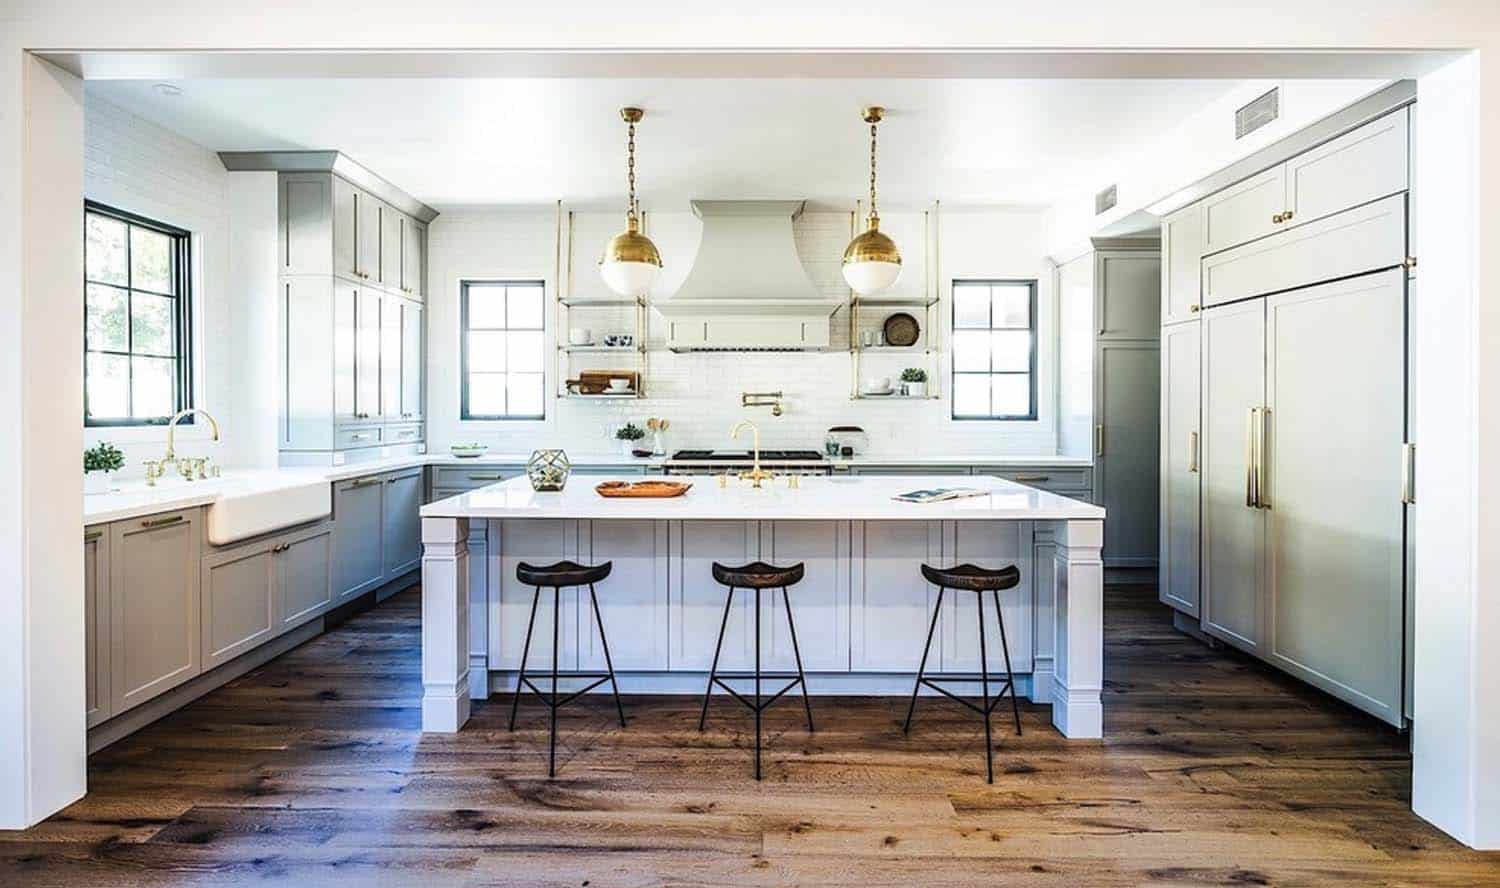 Modern Farmhouse Style-Boswell Construction-07-1 Kindesign